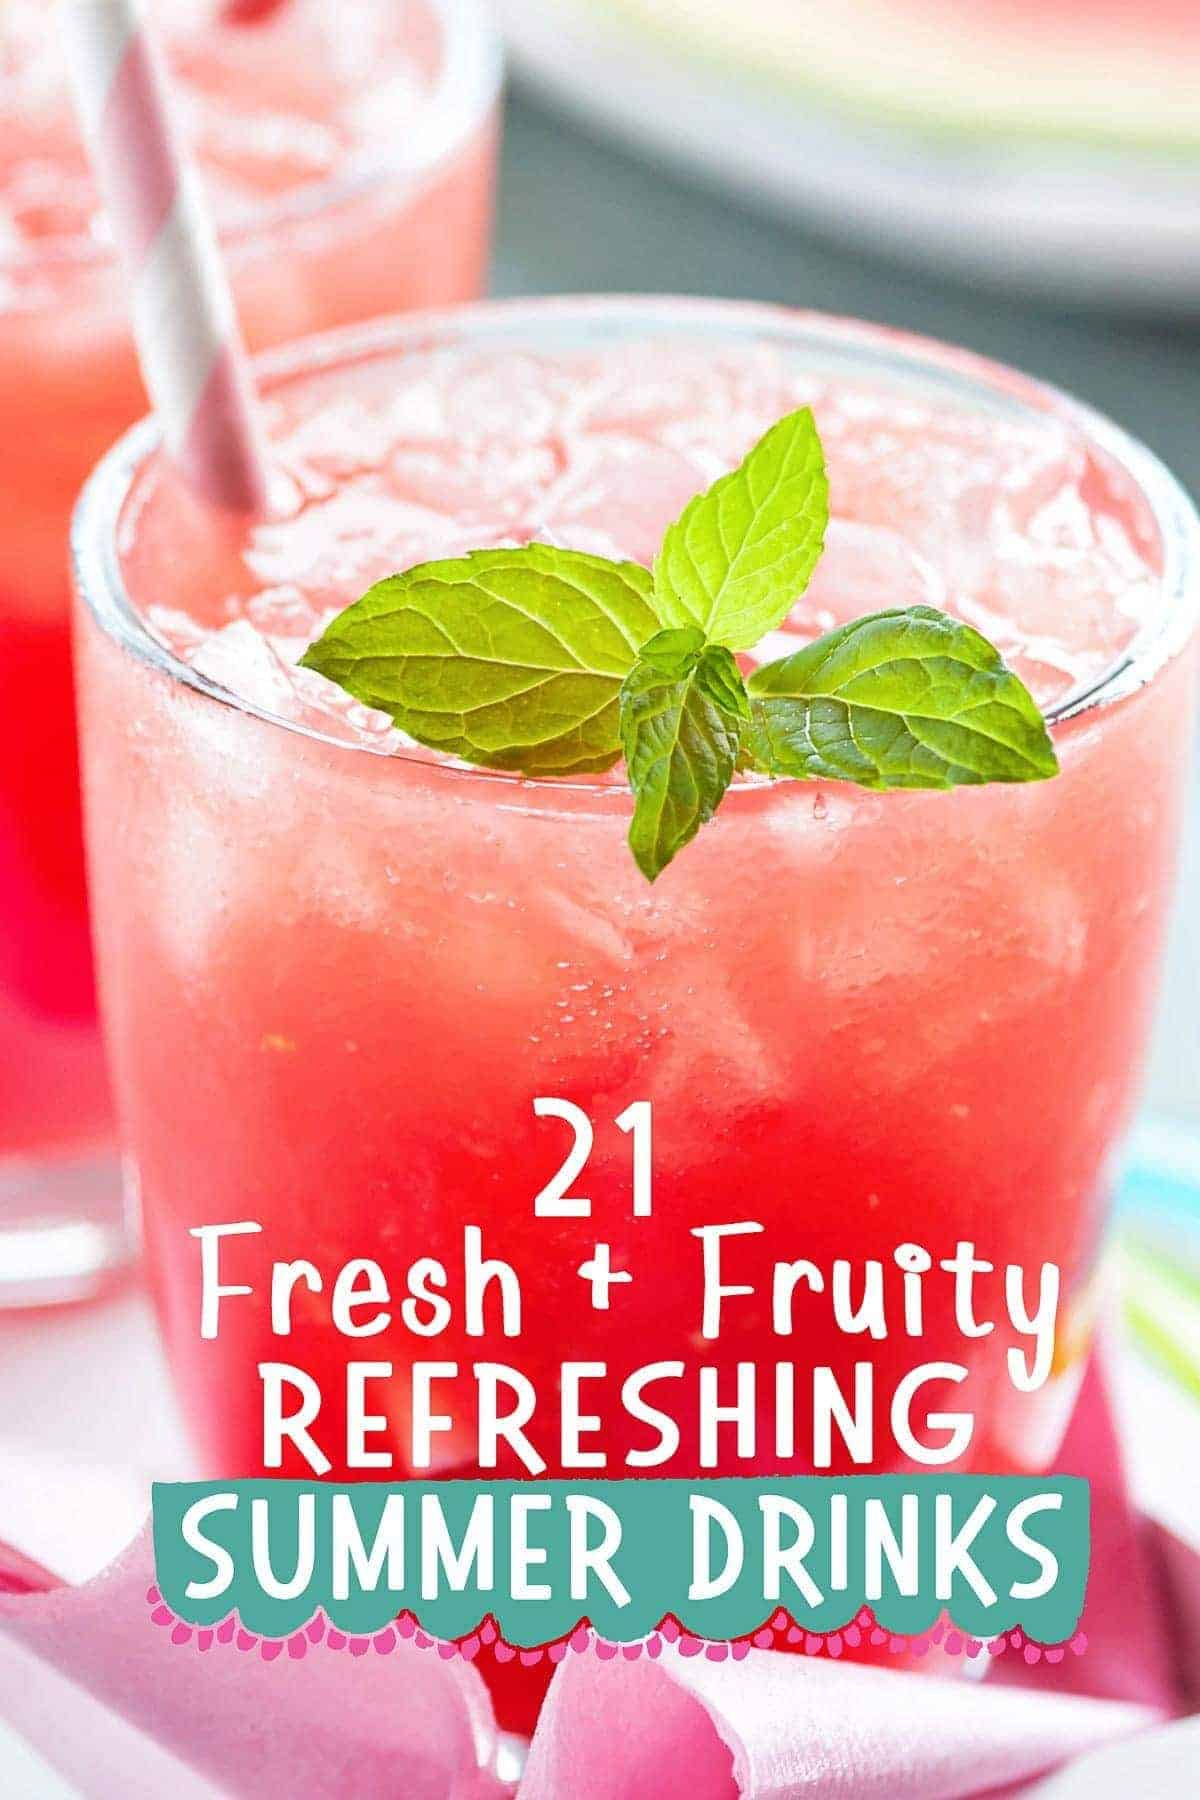 21 Delicious Family Friendly Fruity Summer Drinks Scattered